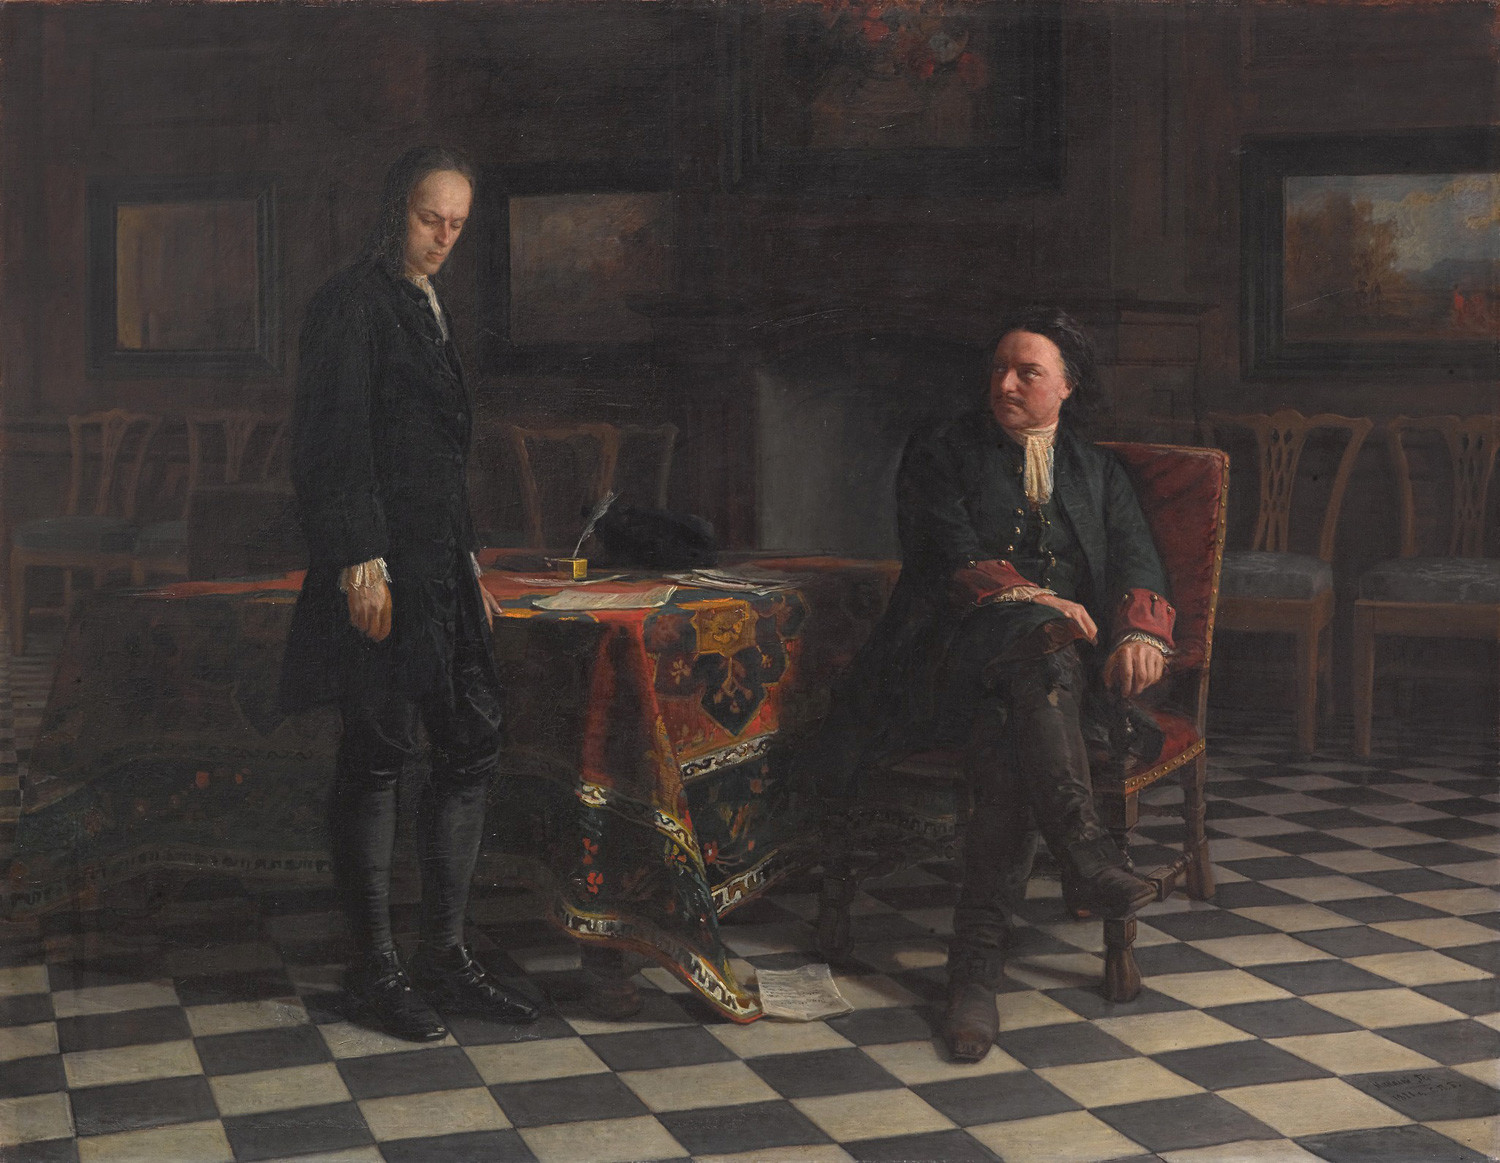 'Peter I (the Great) Interrogating Tsarevich Alexei Petrovich in Petergof' by Nikolai Ge